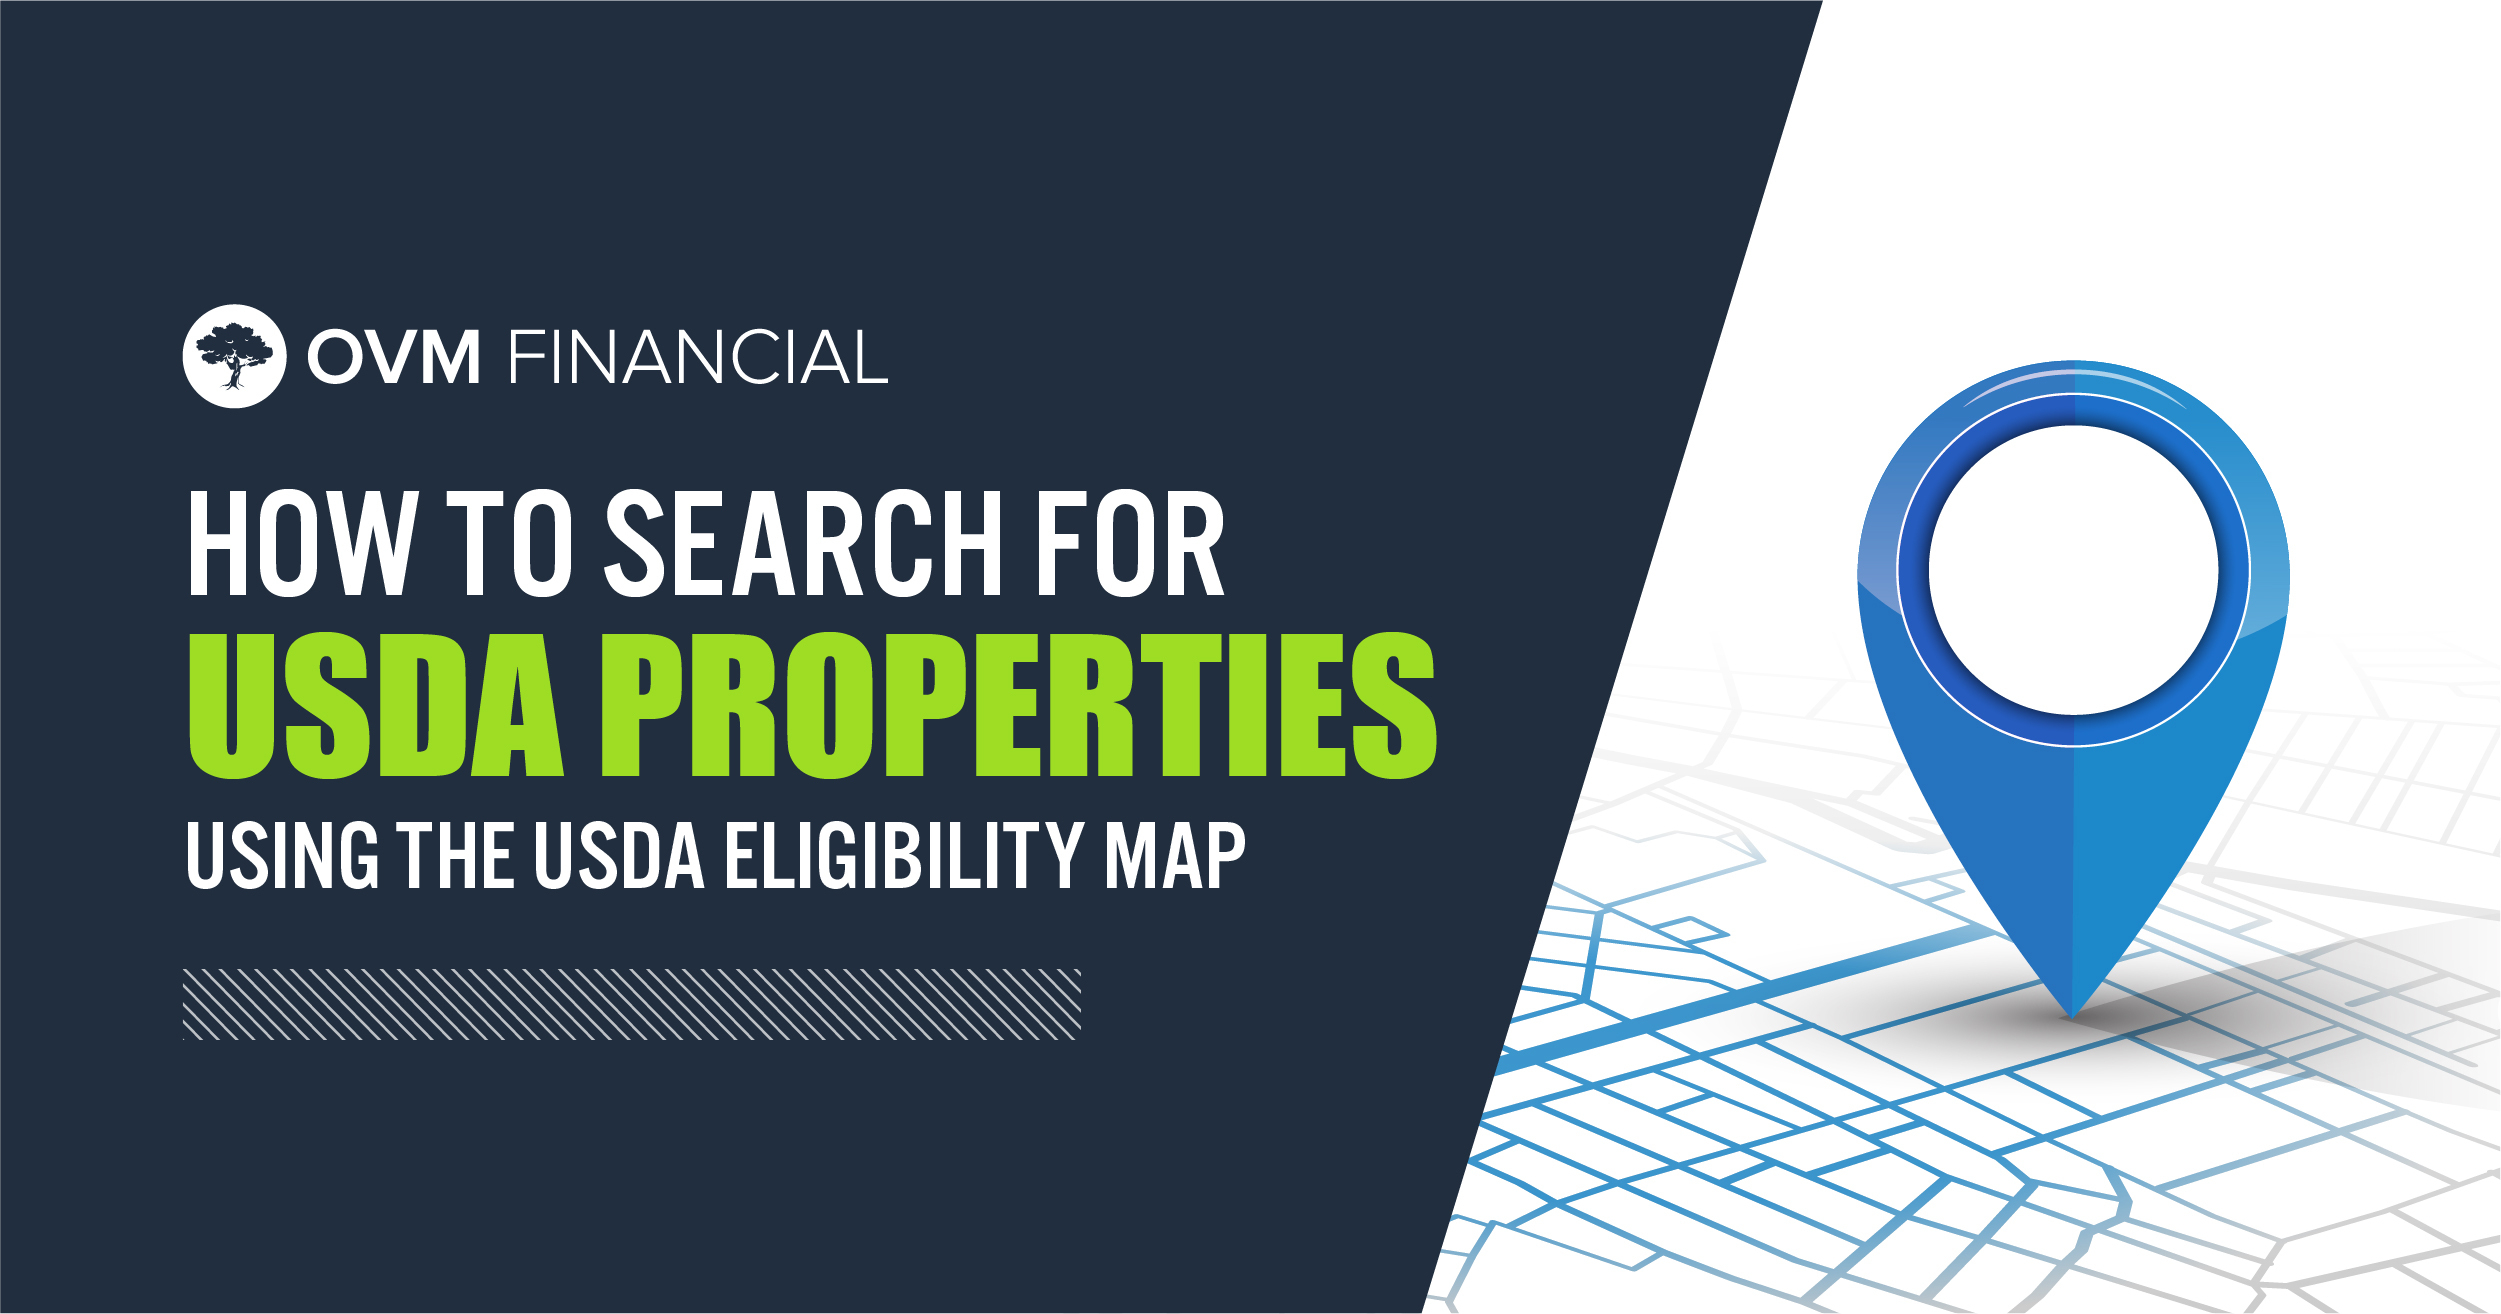 Usda Eligibility Map Is Key Before Looking For A No Money Down Home - Usda Property Eligibility Map Texas